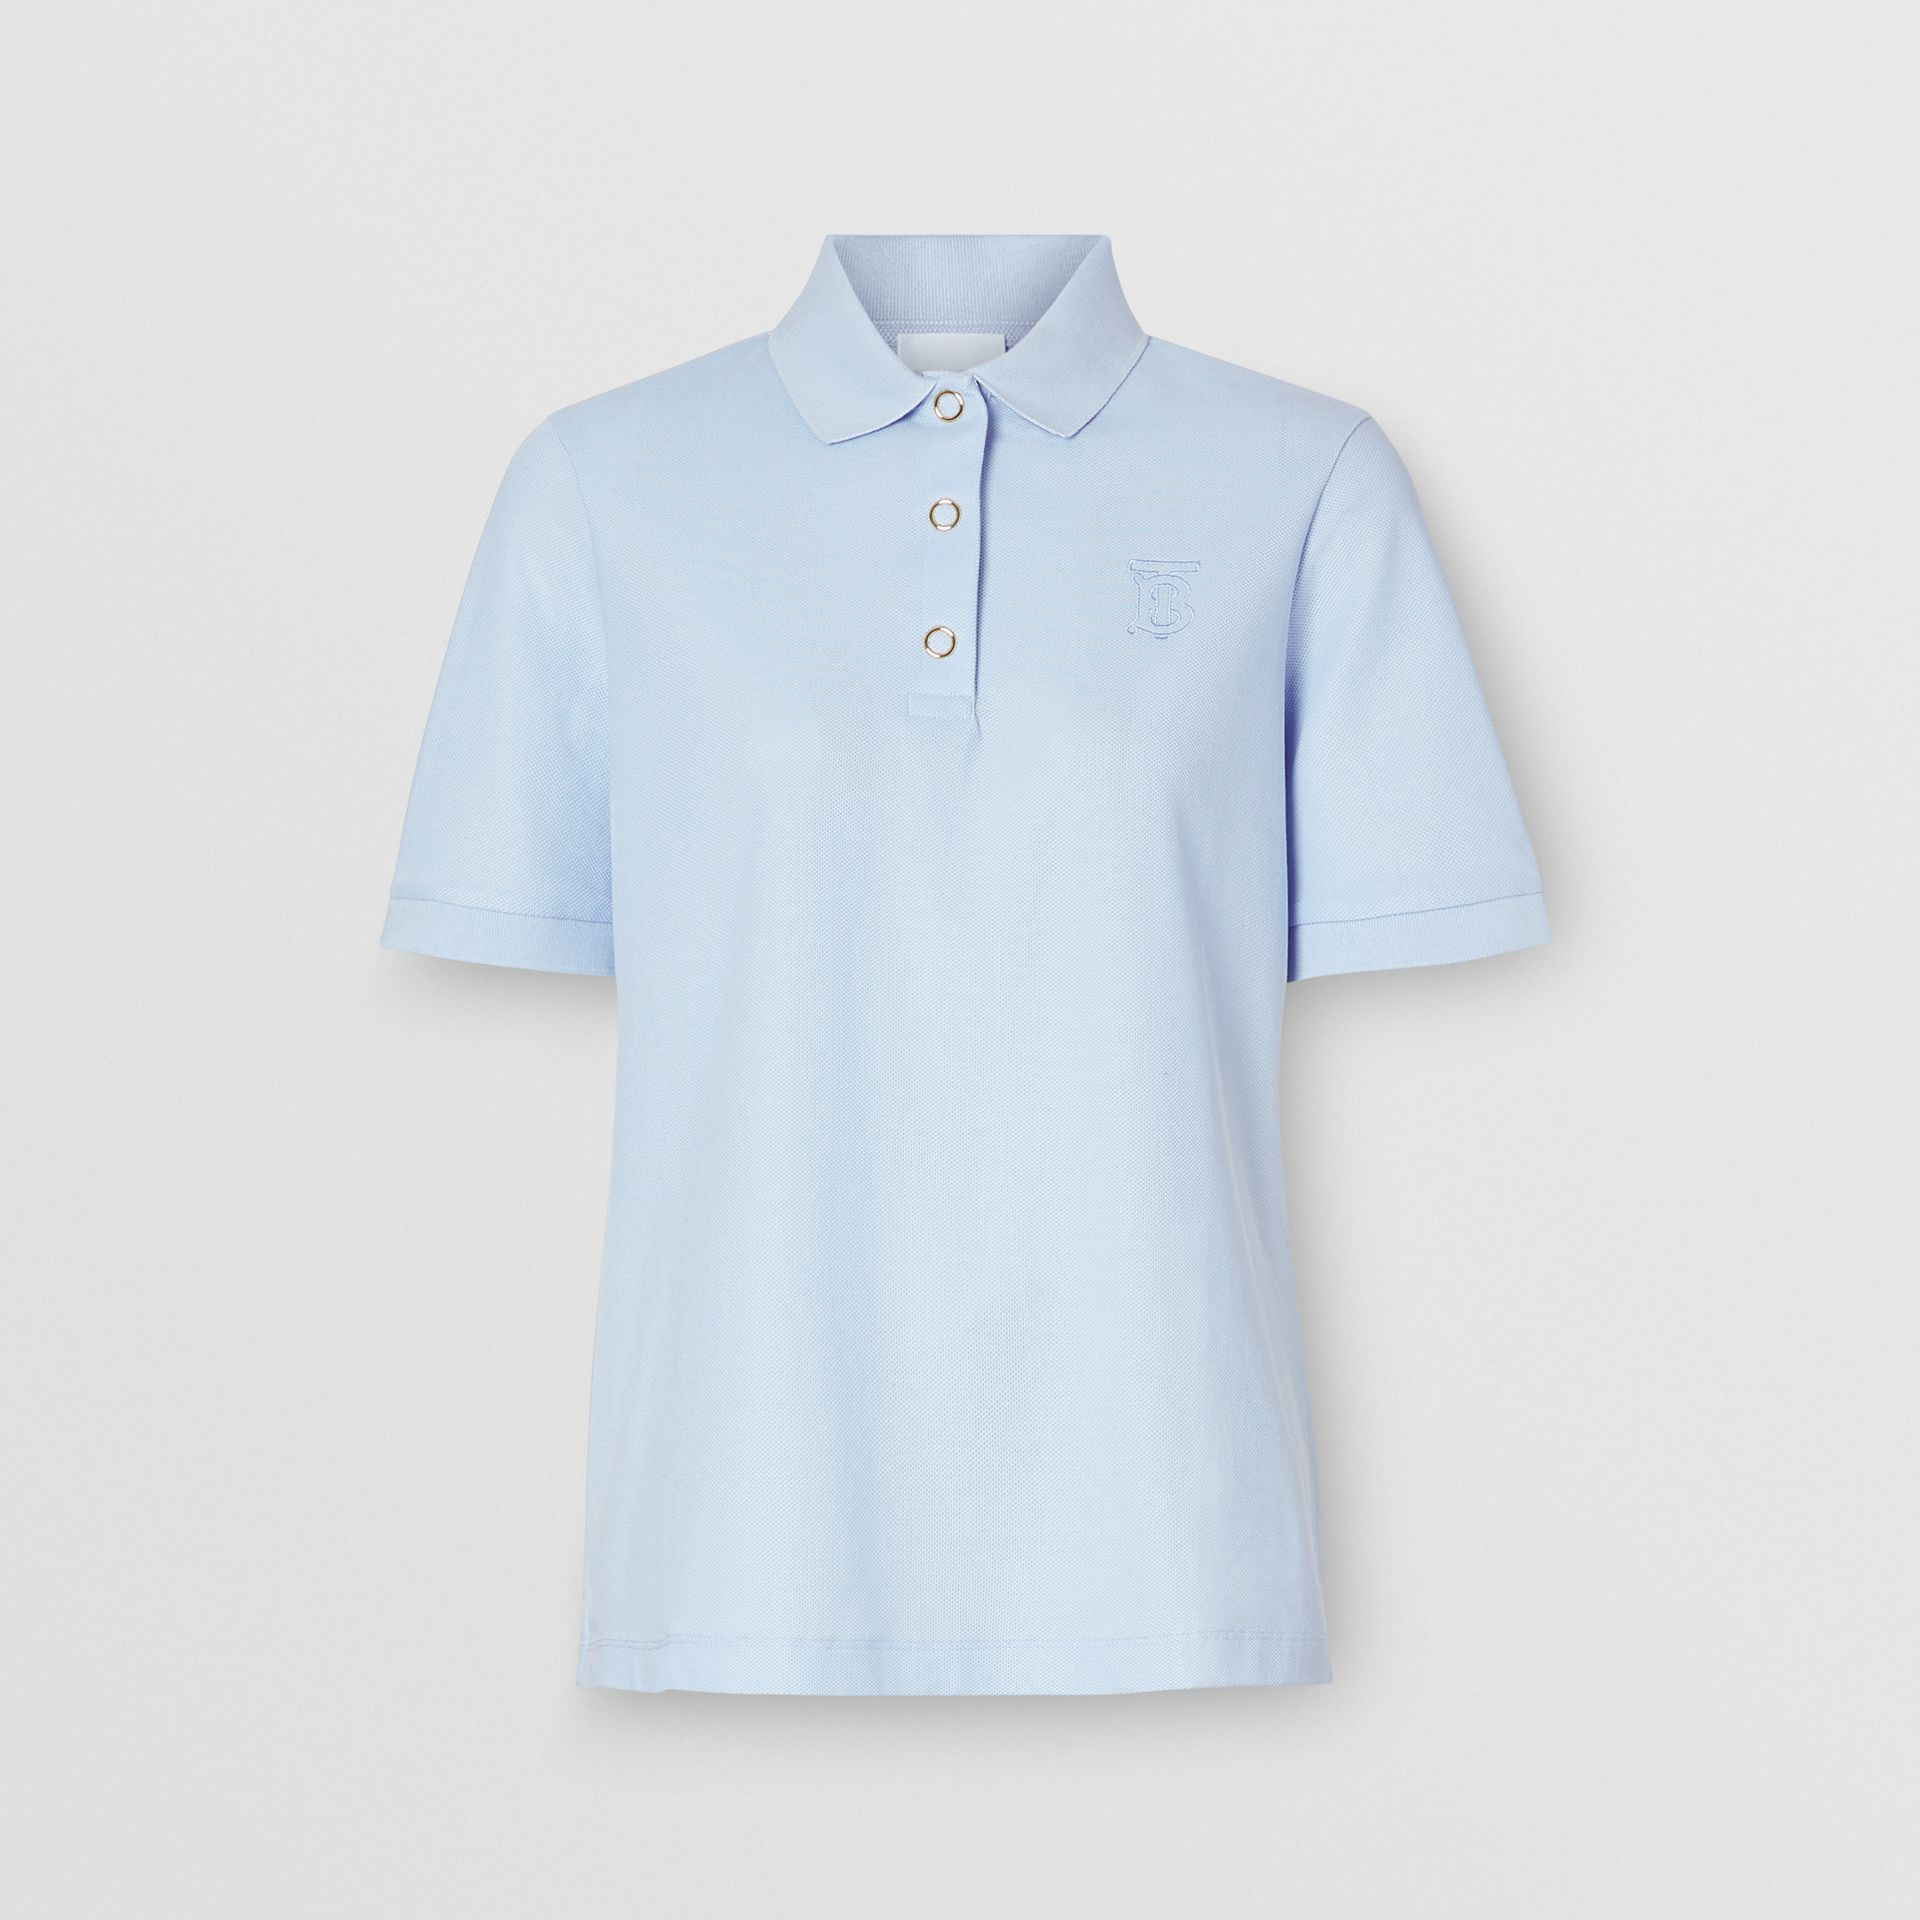 Monogram Motif Cotton Piqué Polo Shirt in Pale Blue - Women | Burberry - gallery image 3